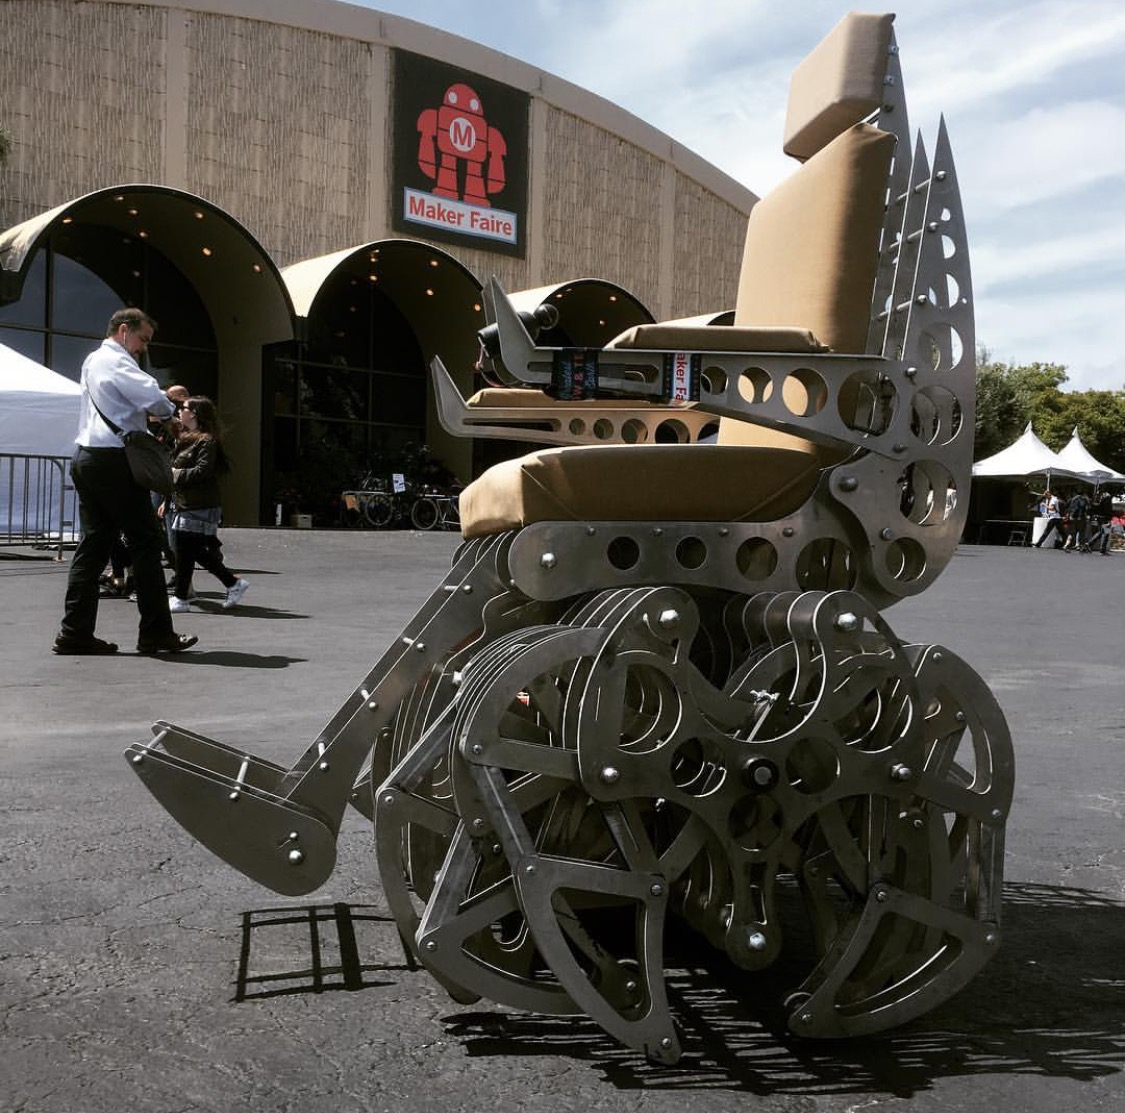 This Robotic, Spider-Legged Chair Looks Like It Crawled Out of the devil's Workshop.